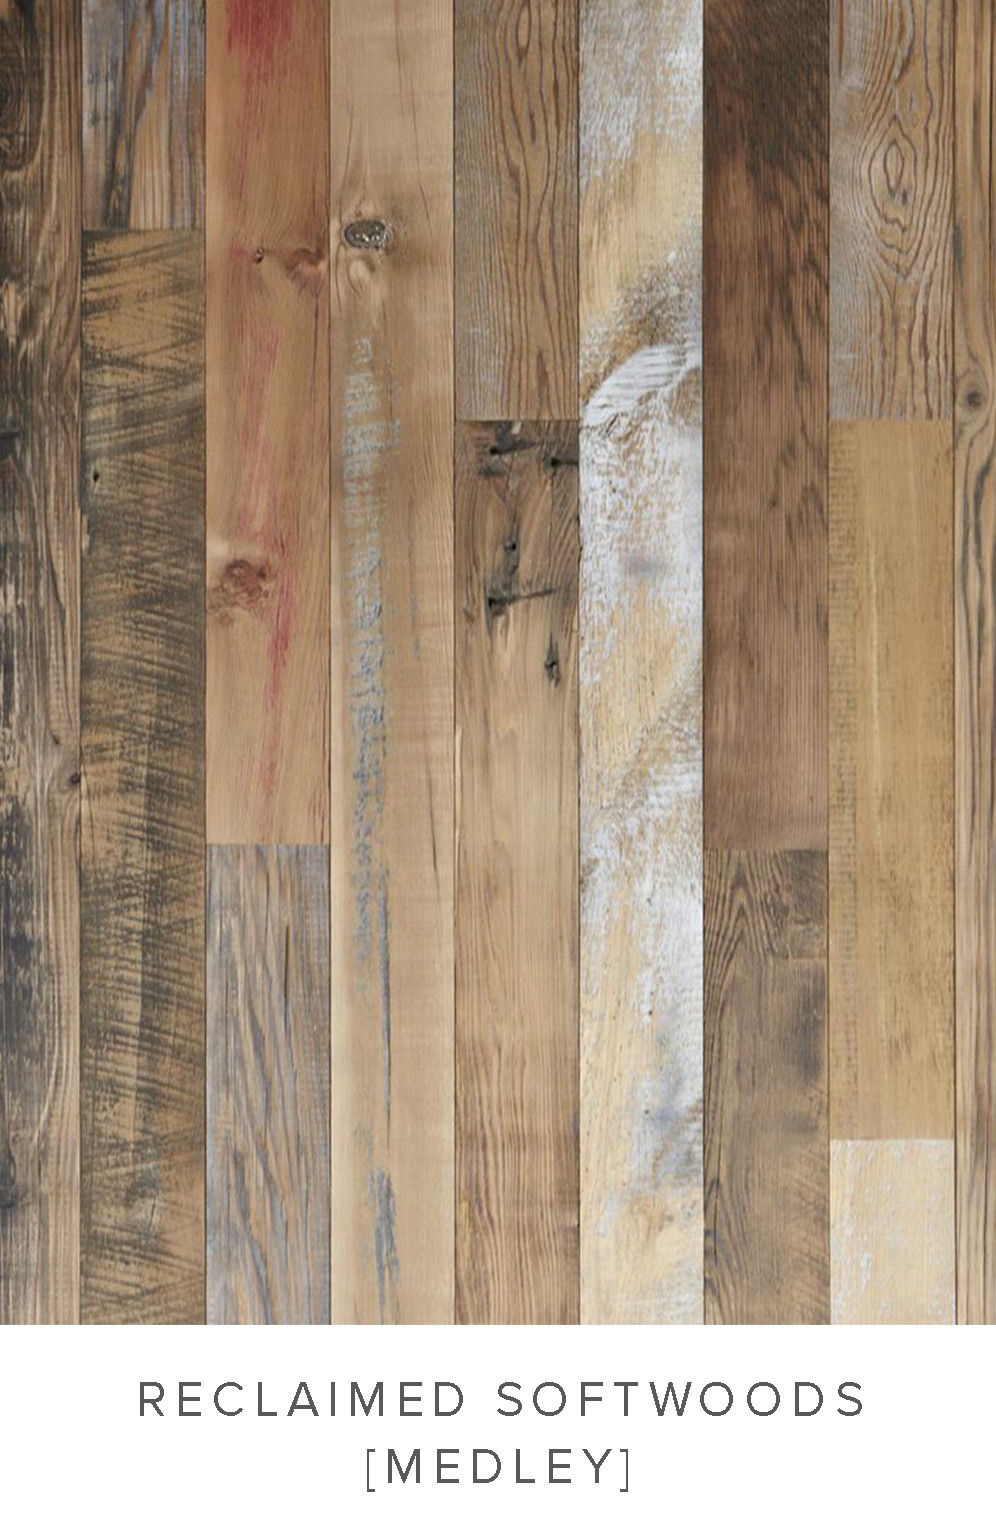 hardwood floor showroom nyc of extensive range of reclaimed wood flooring all under one roof at the intended for reclaimed softwoods medley